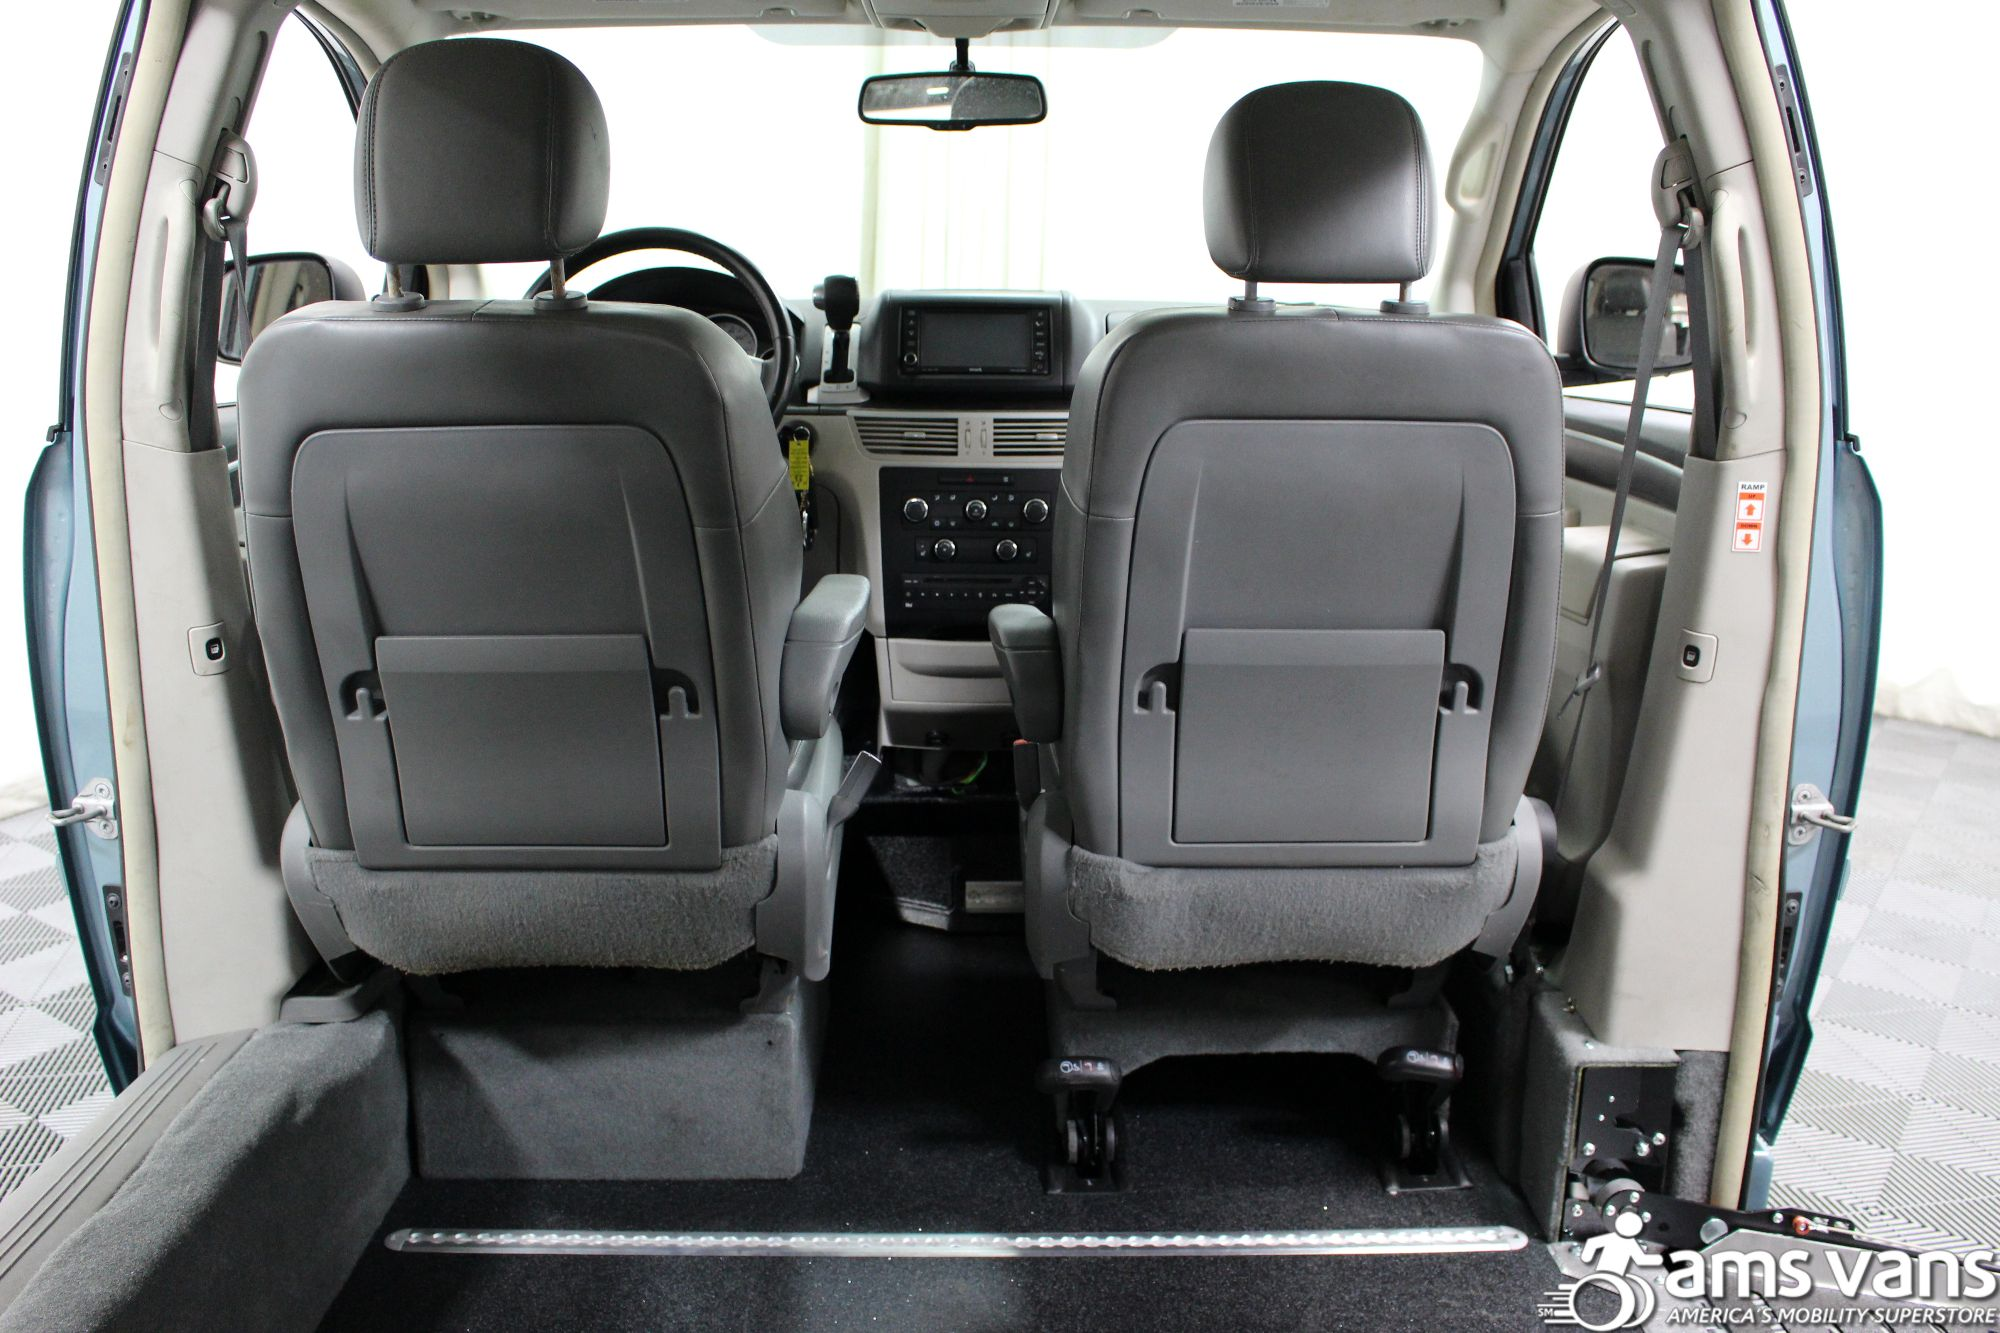 2010 Volkswagen Routan Wheelchair Van For Sale #6